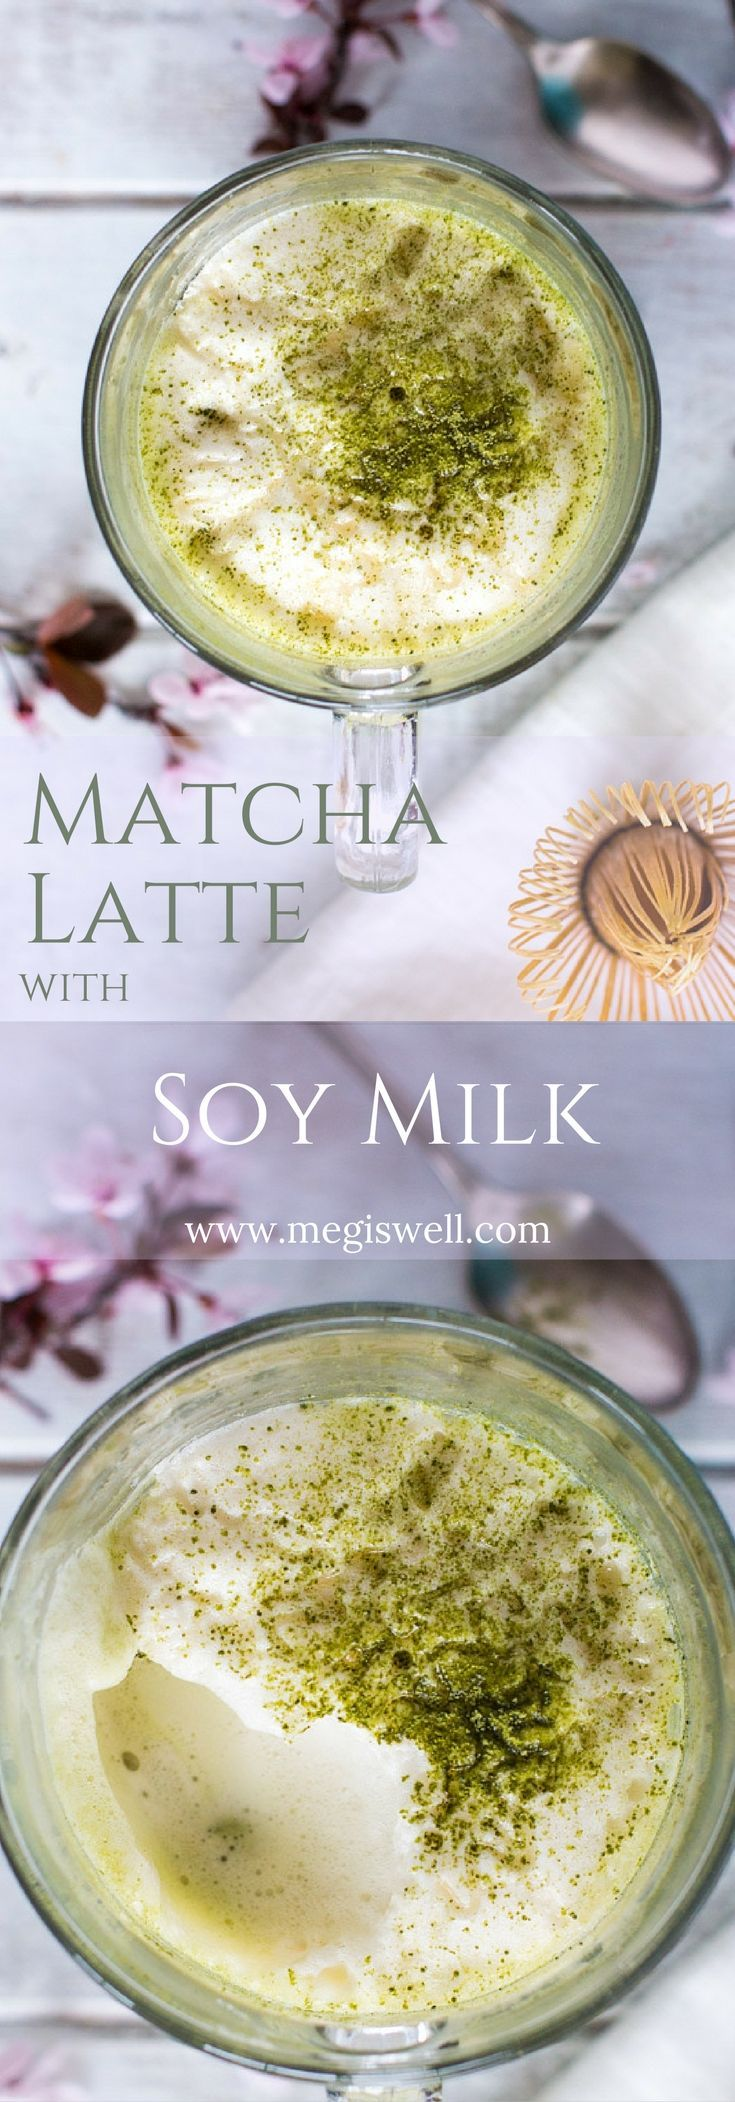 Steamed and frothed soy milk, lightly sweetened with honey, make this Matcha Latte with Soy Milk a cheaper and better tasting version than what you can get in a café.   http://www.megiswell.com